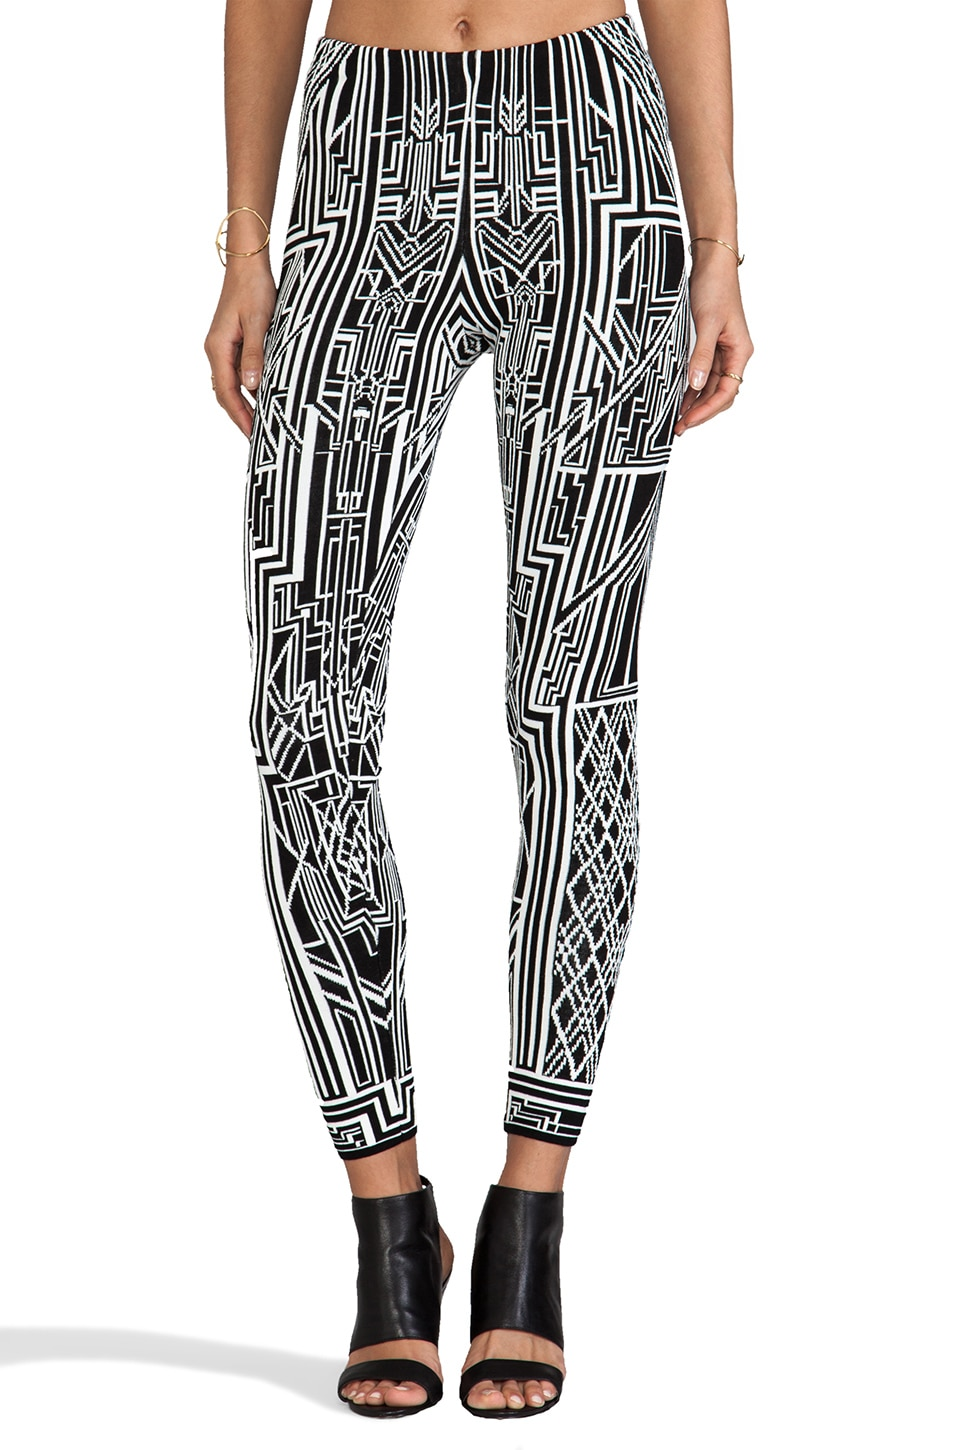 RVN Tron Flat Jacquard Pants in White & Black